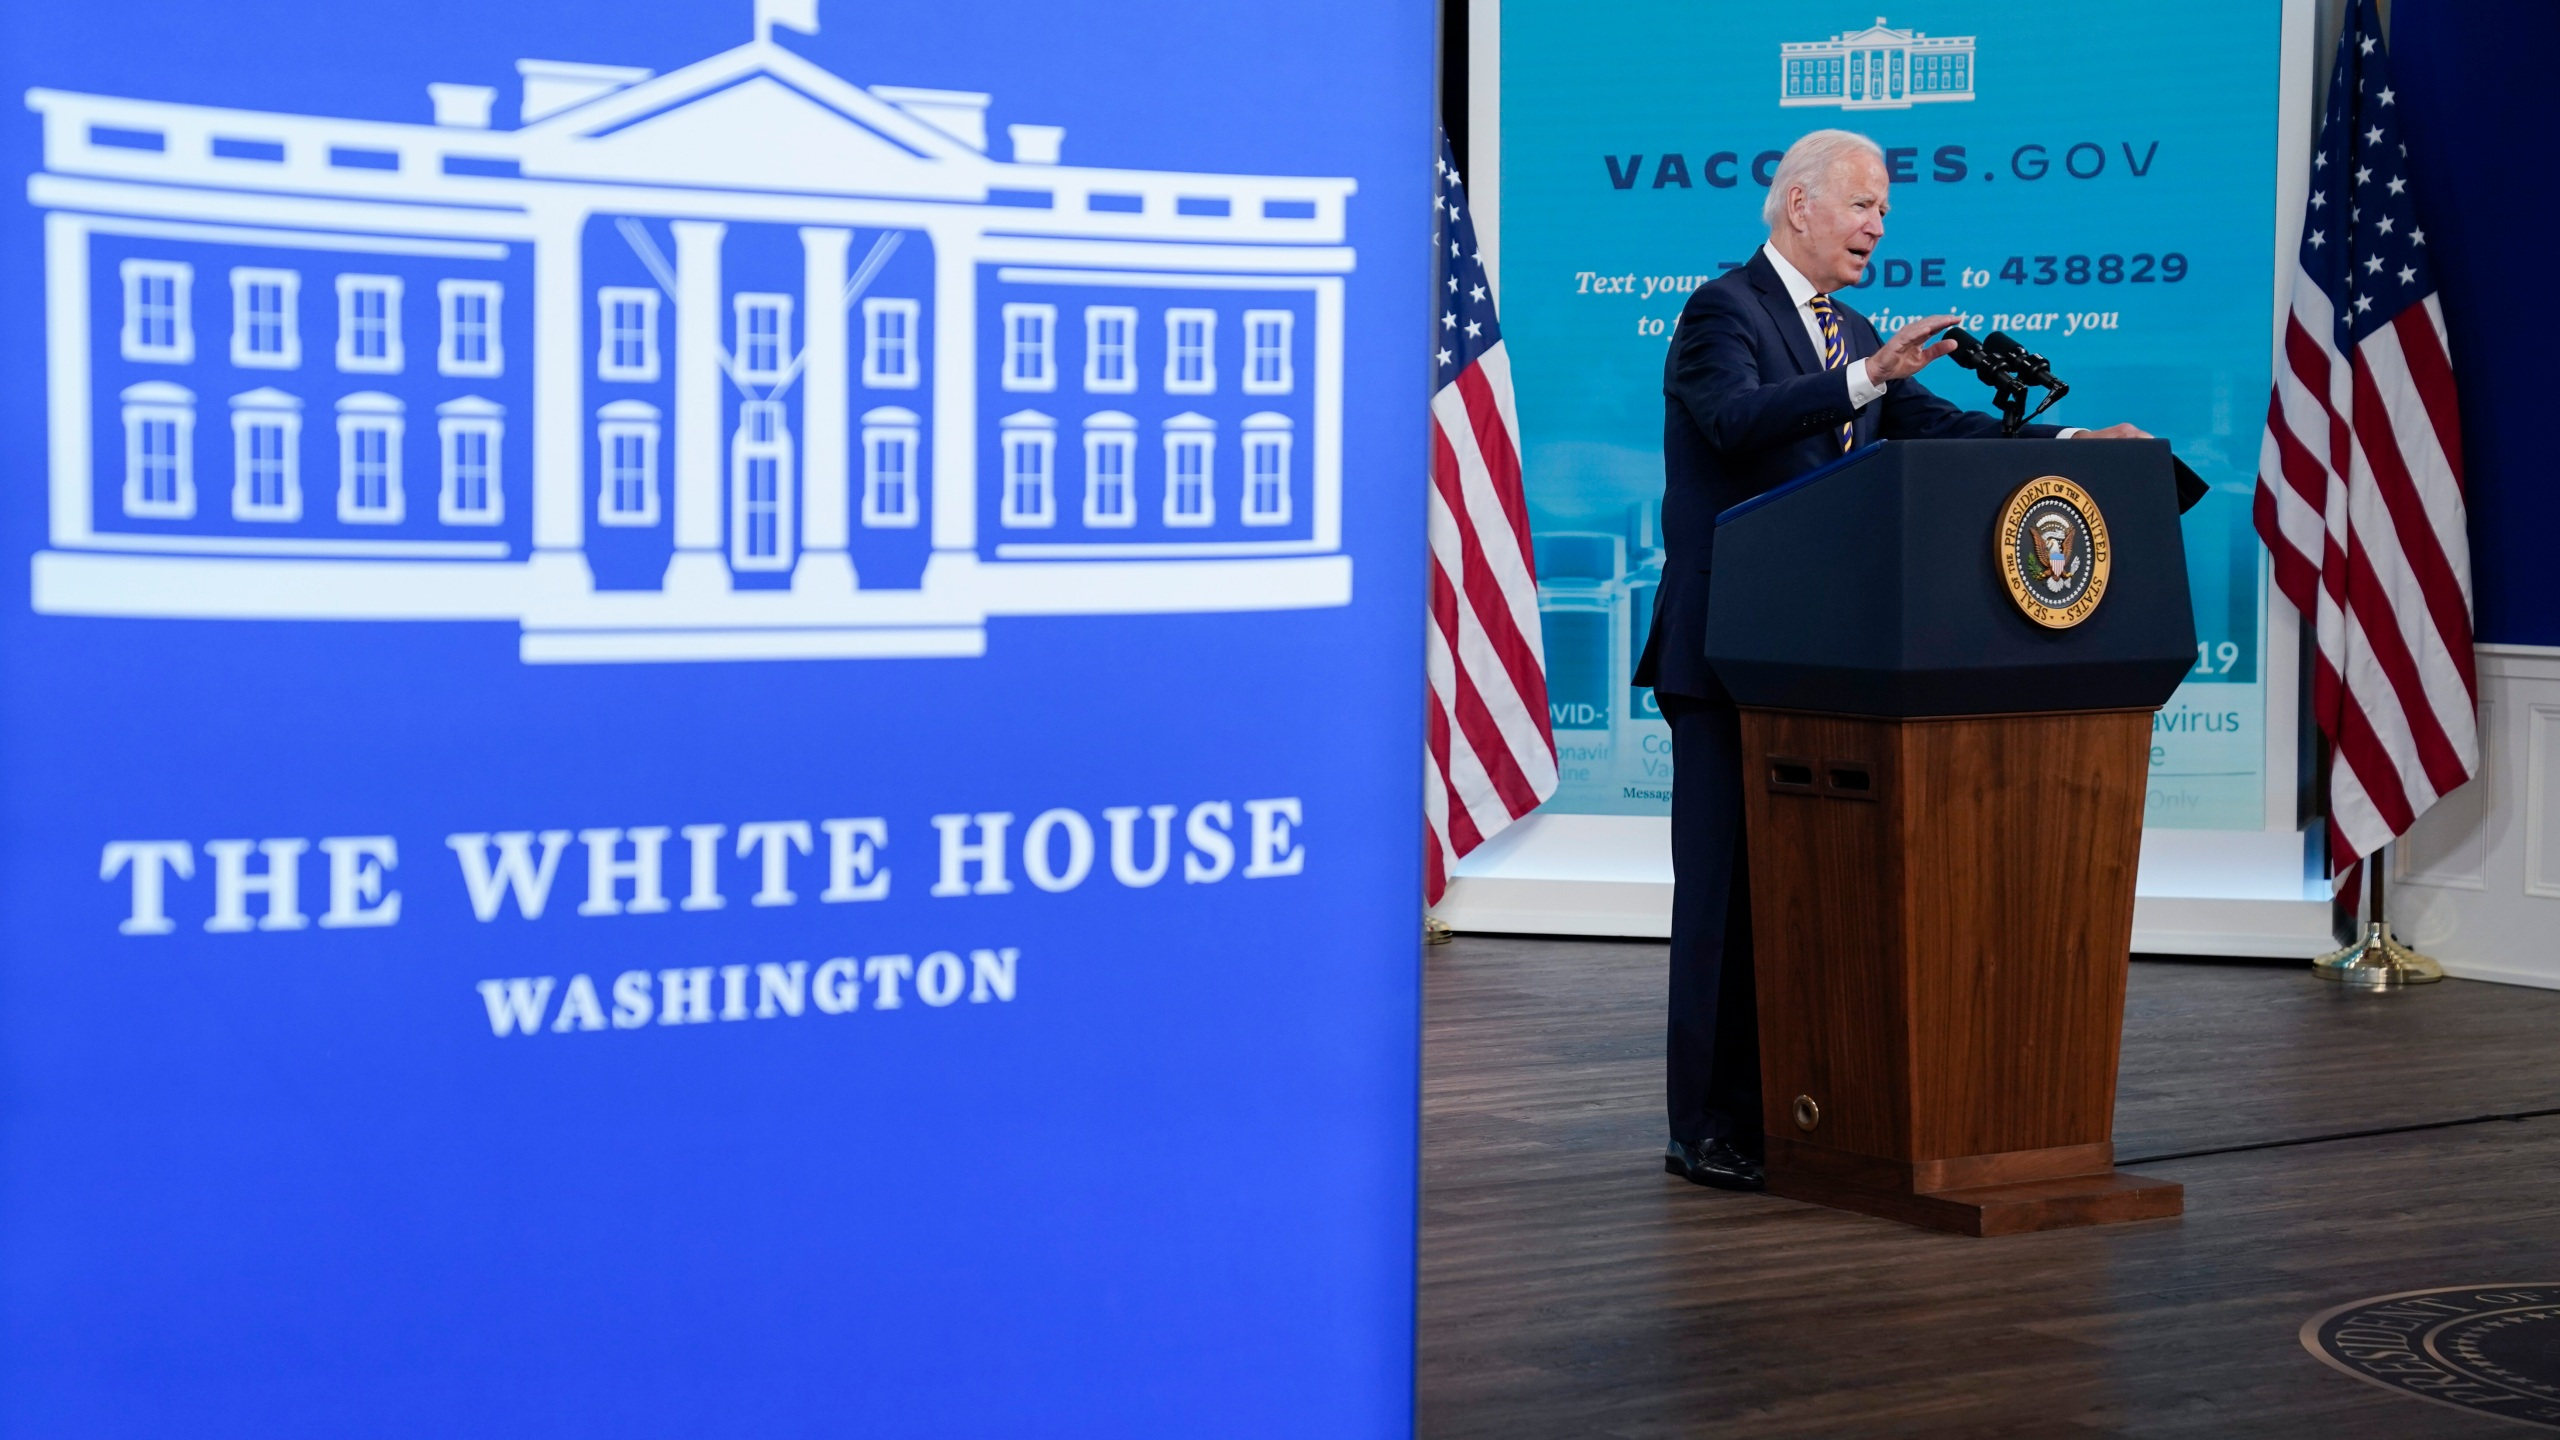 President Joe Biden delivers an update on the COVID-19 response and vaccination program, in the South Court Auditorium on the White House campus, Thursday, Oct. 14, 2021, in Washington. (AP Photo/Evan Vucci)